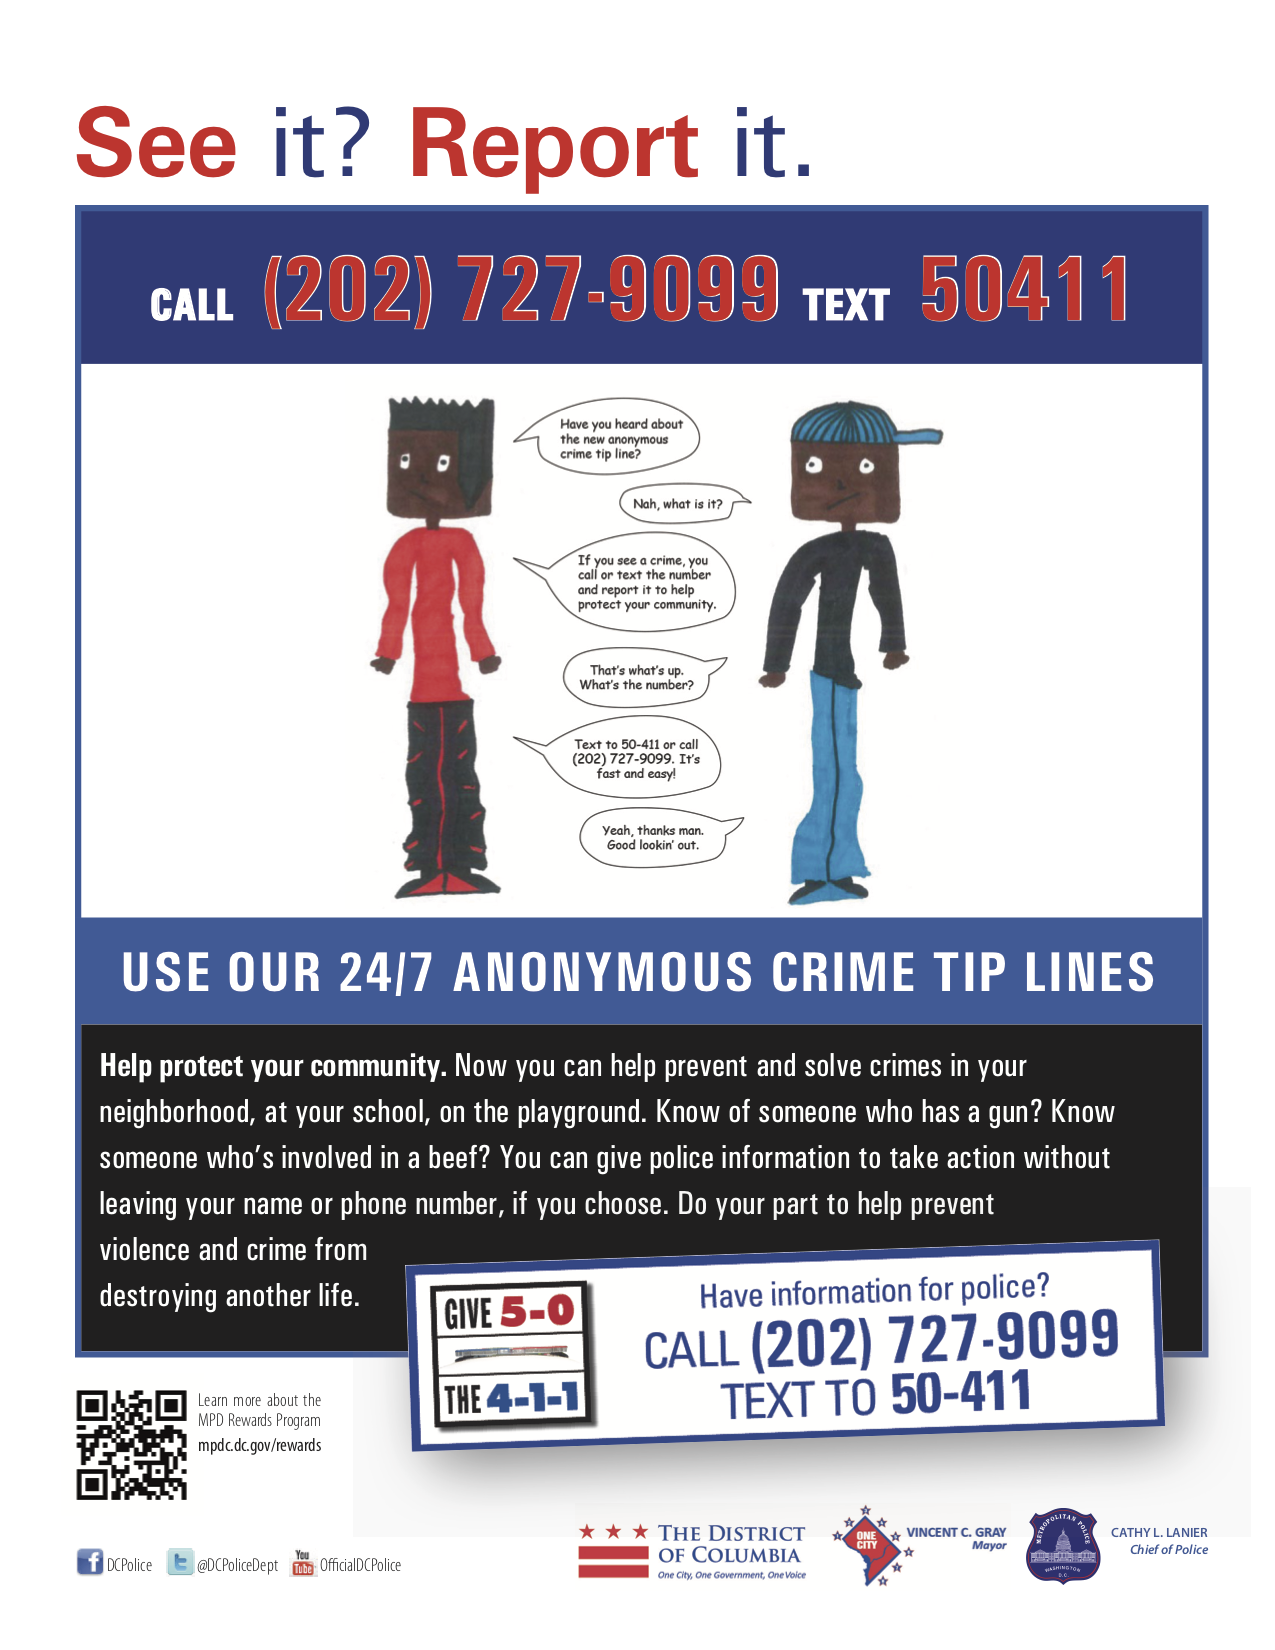 MPD offers a reward up to $2,500 for tips leading to the